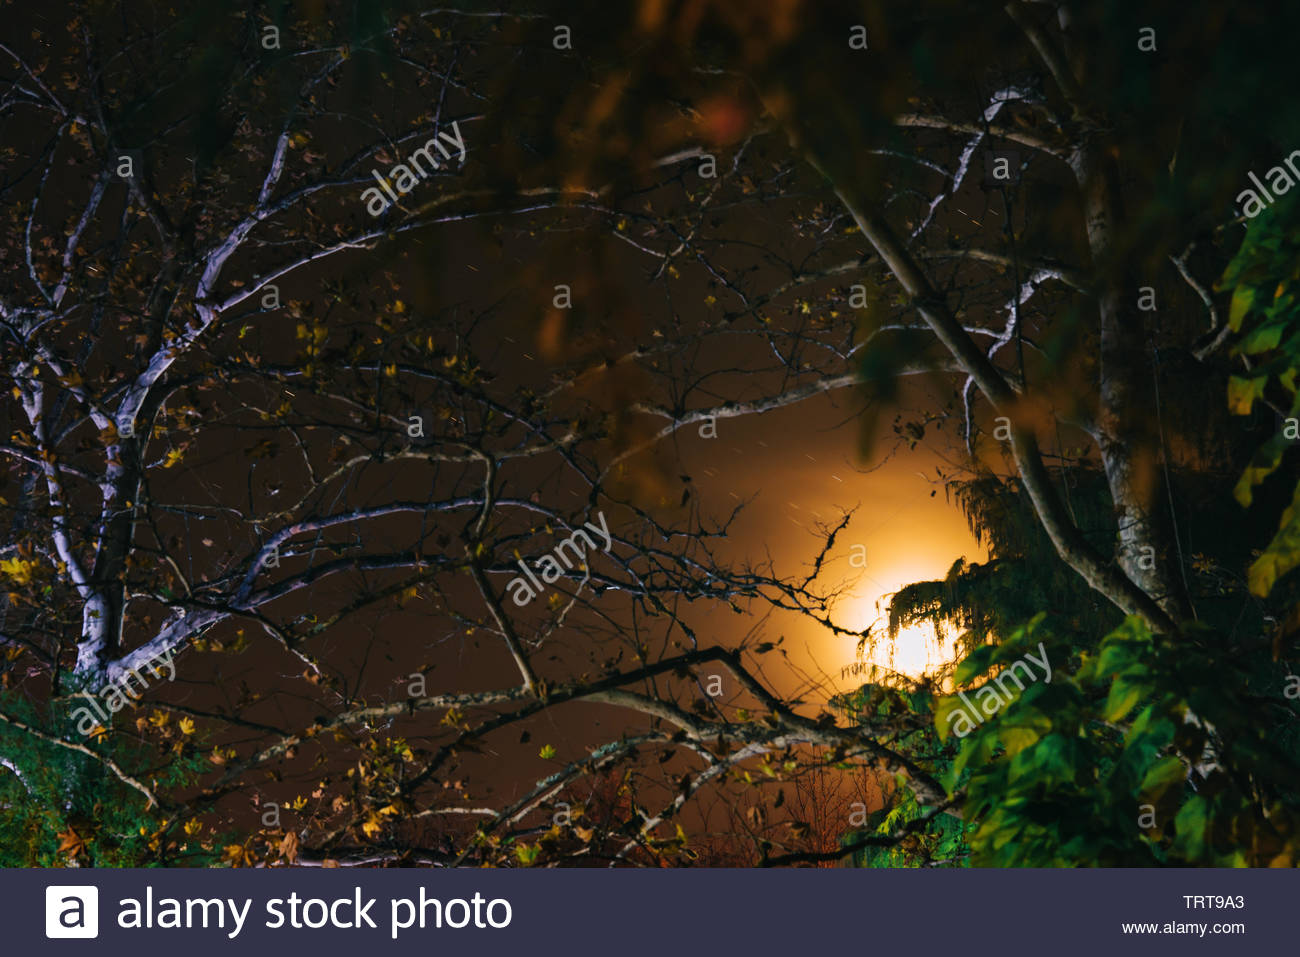 misty forest with moon and stars - Stock Image